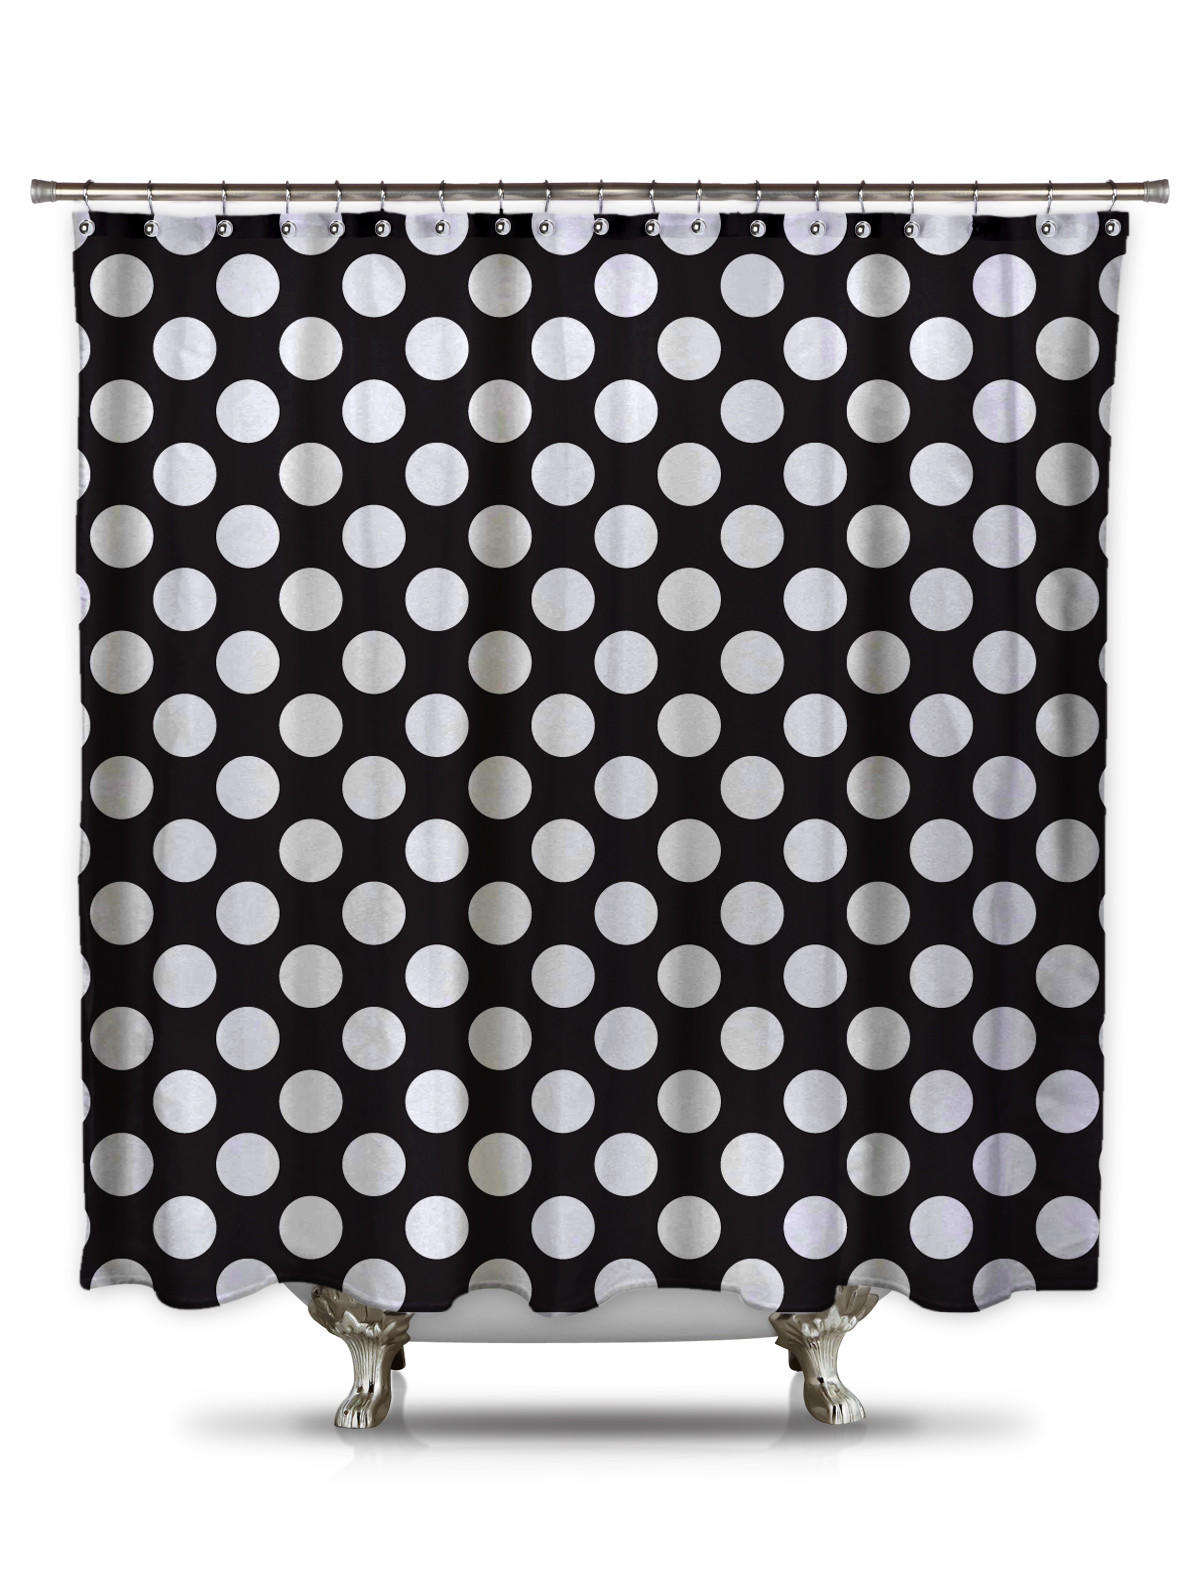 Black and White Polka-Dot Fabric Shower from Shower Curtain HQ